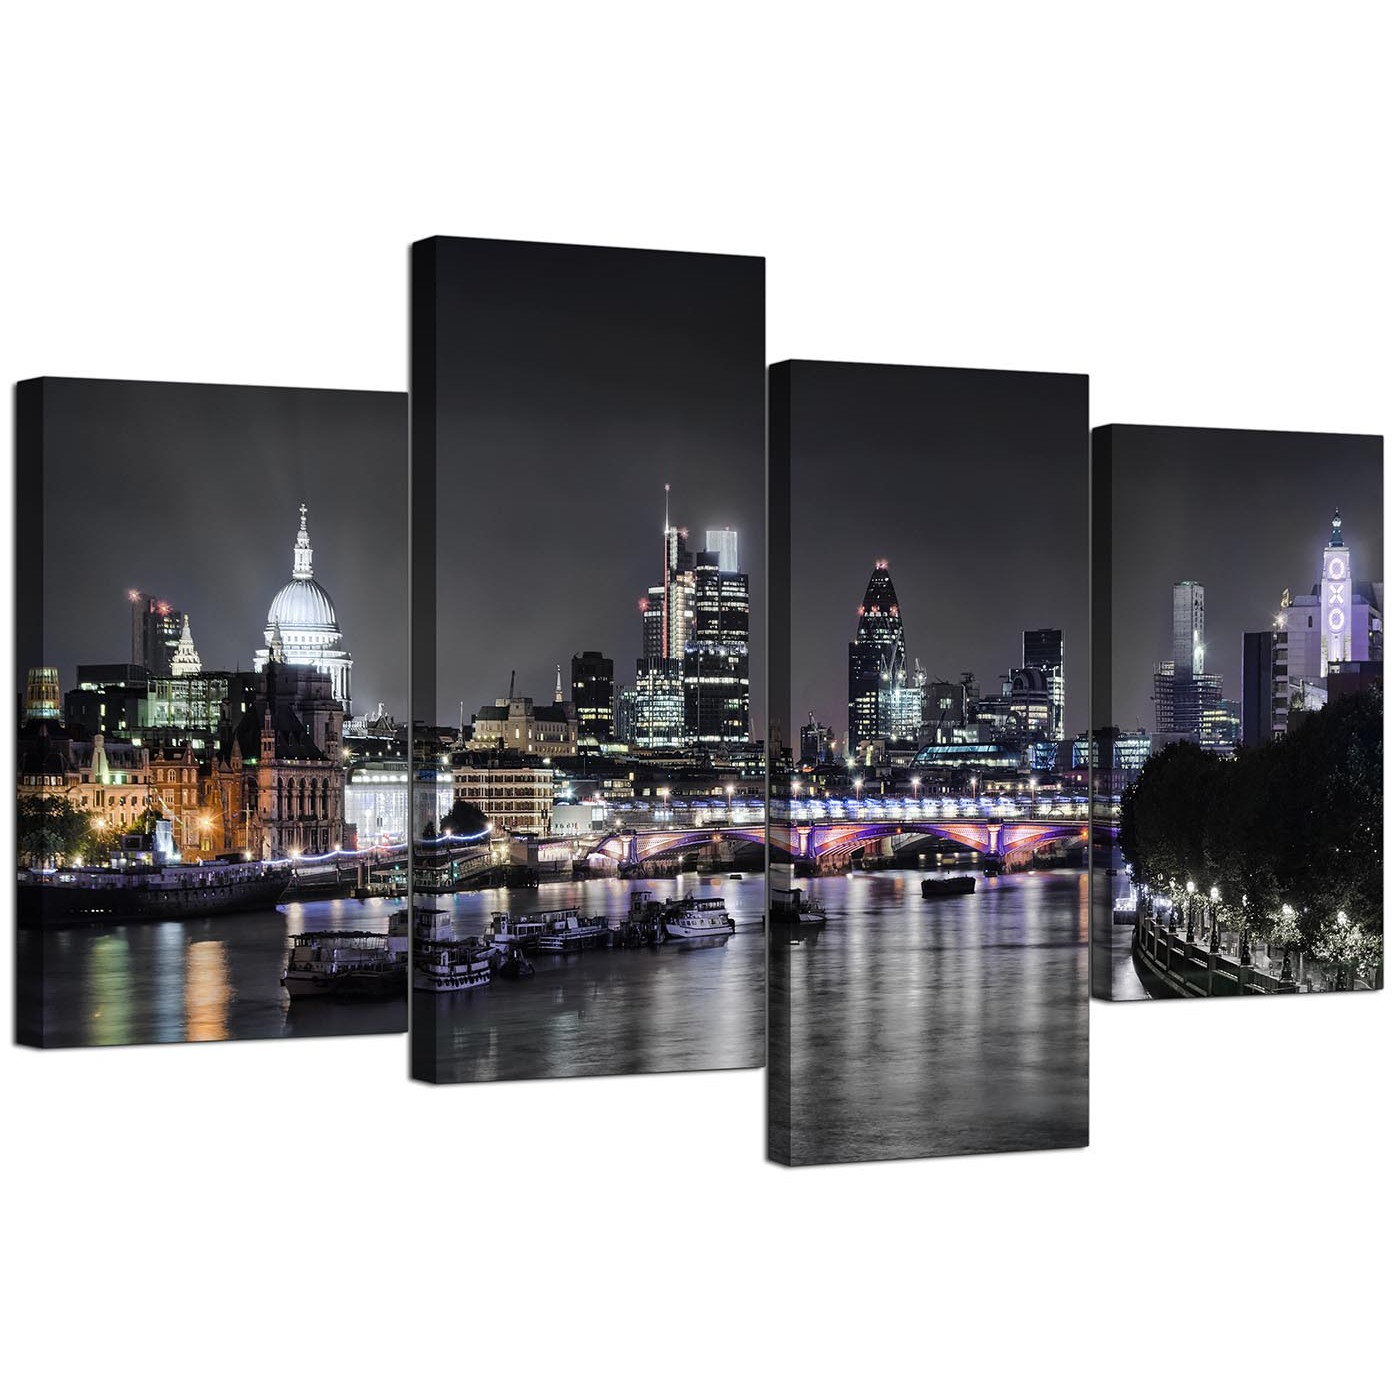 Canvas Wall Art Of London Skyline For Your Living Room Panel